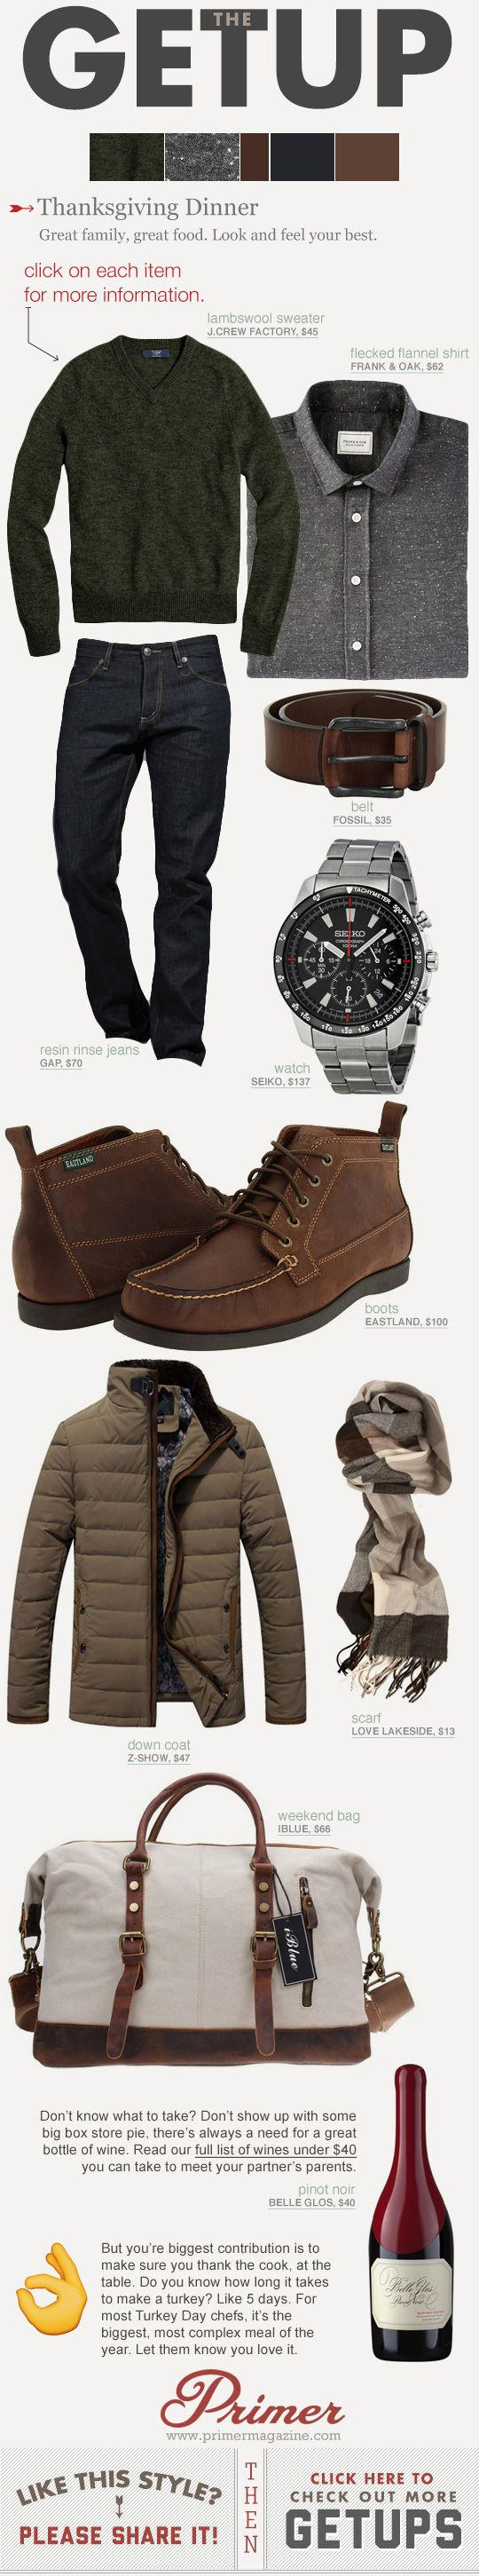 best male fashion trends images on pinterest menswear